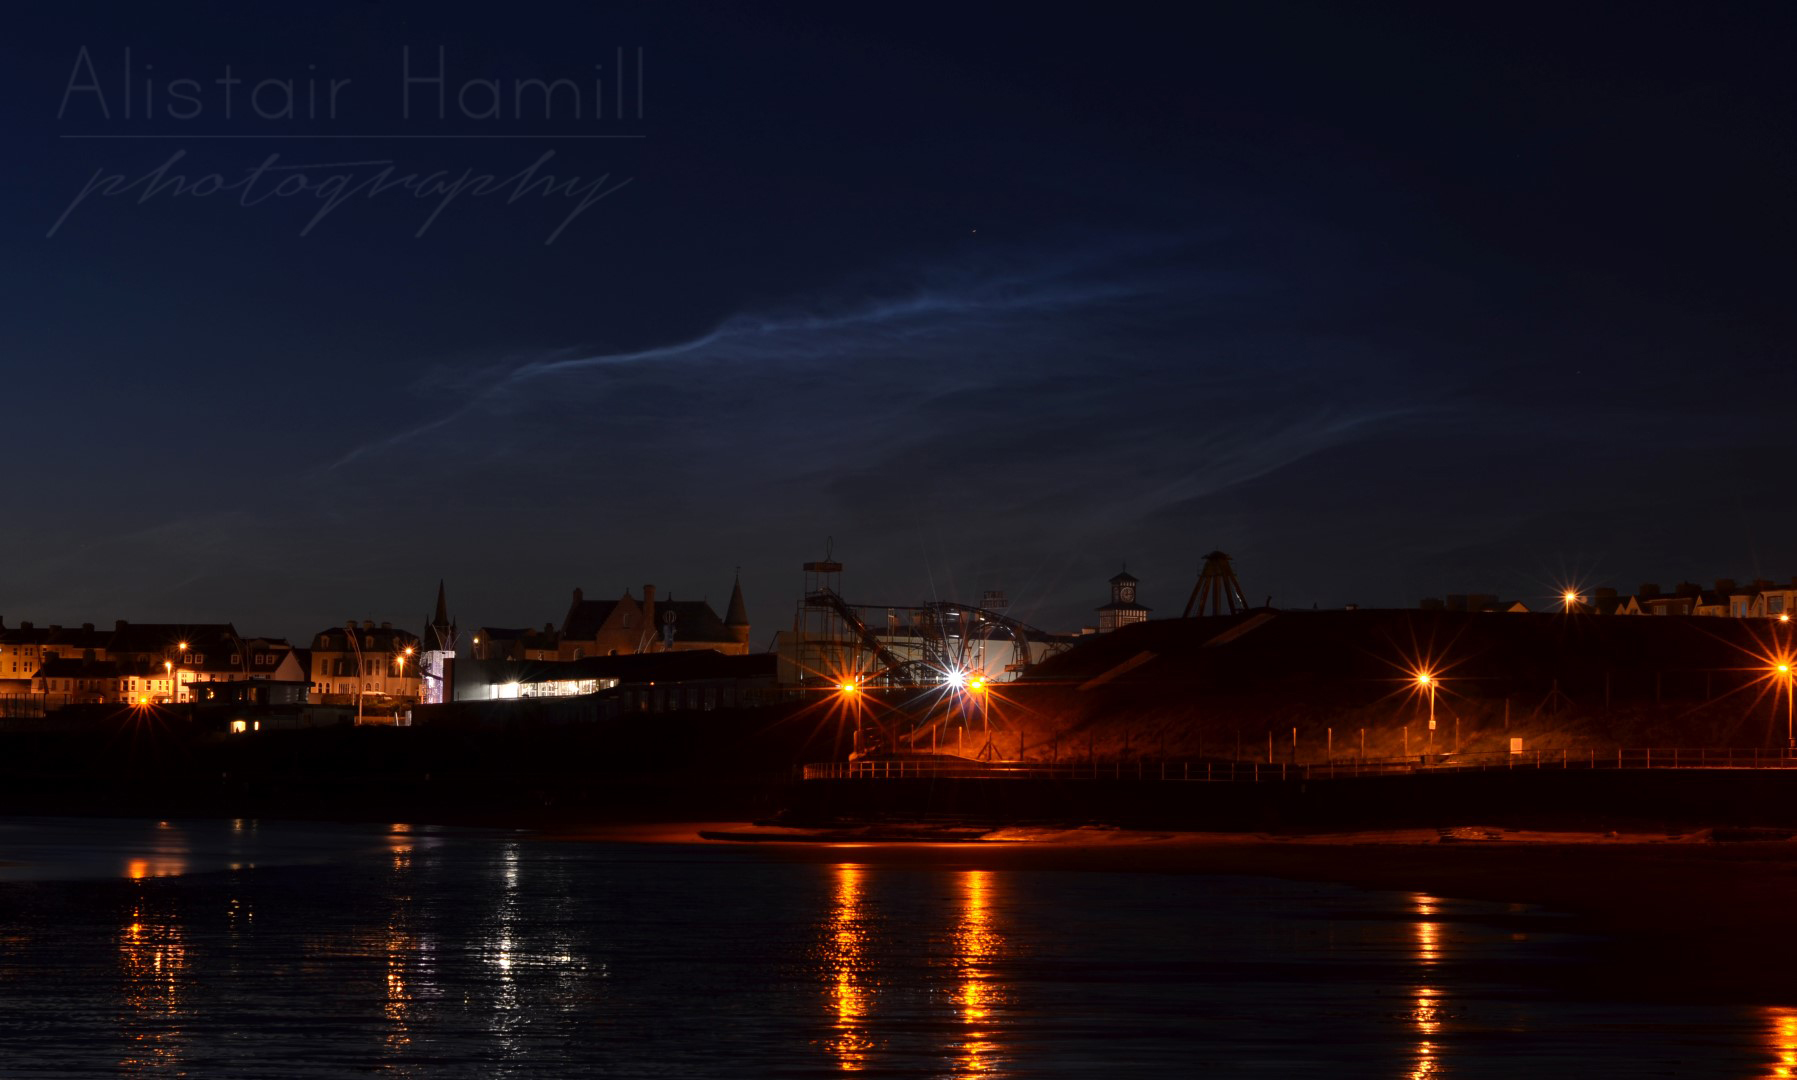 Noctiluence hanging over Barry's. For some reason it reminded me of a scene from Scooby Doo...